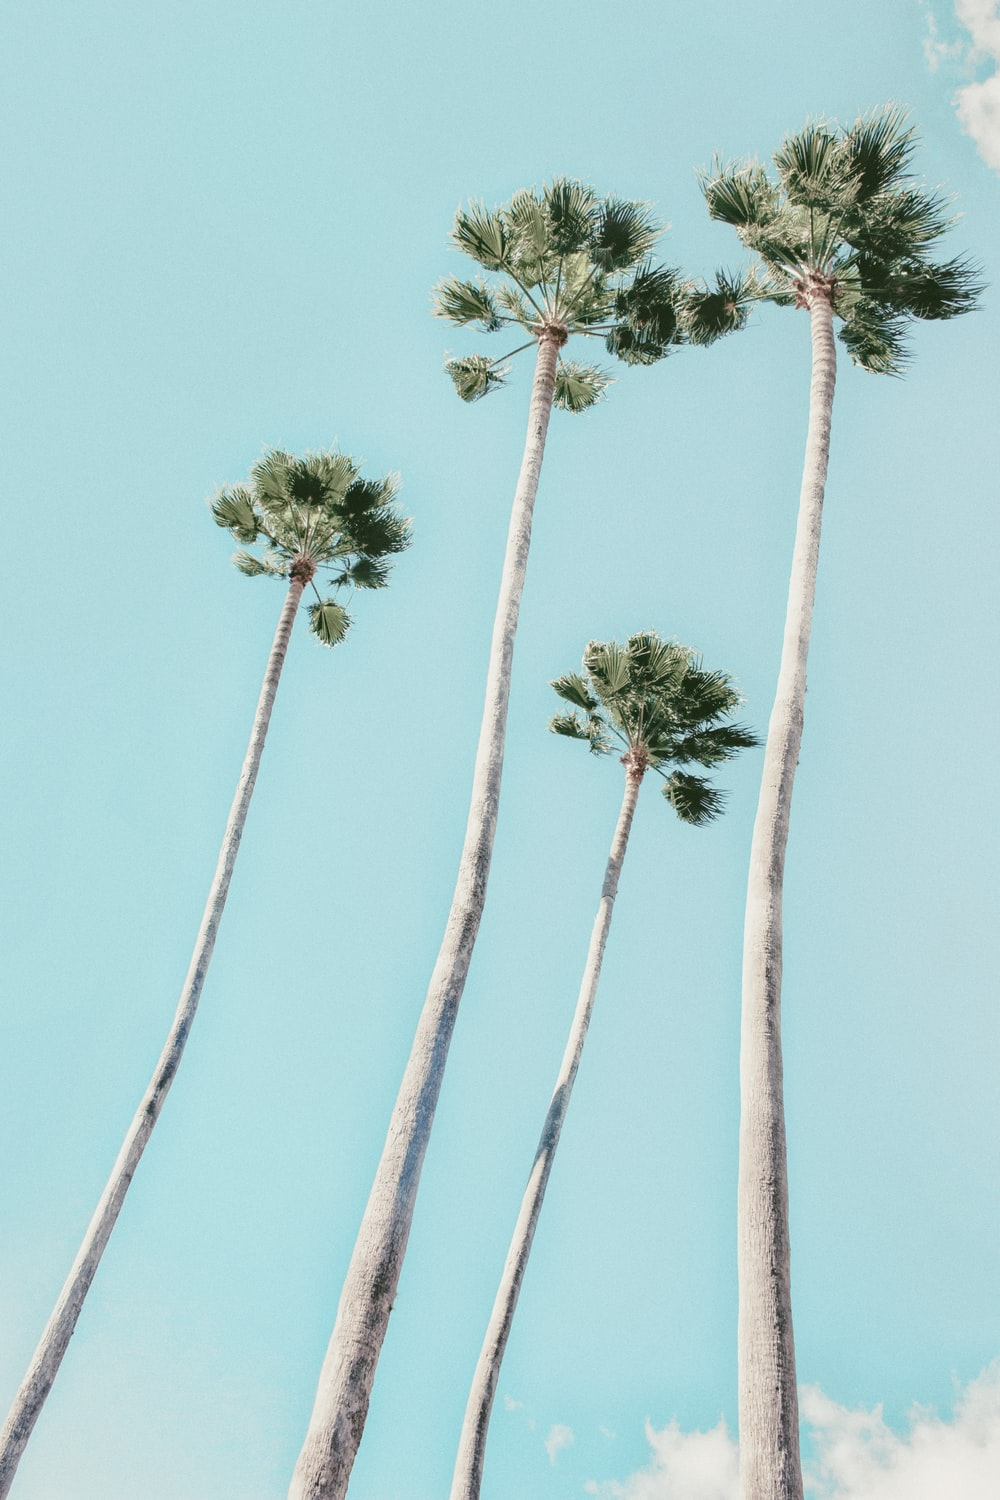 four green-leafed trees